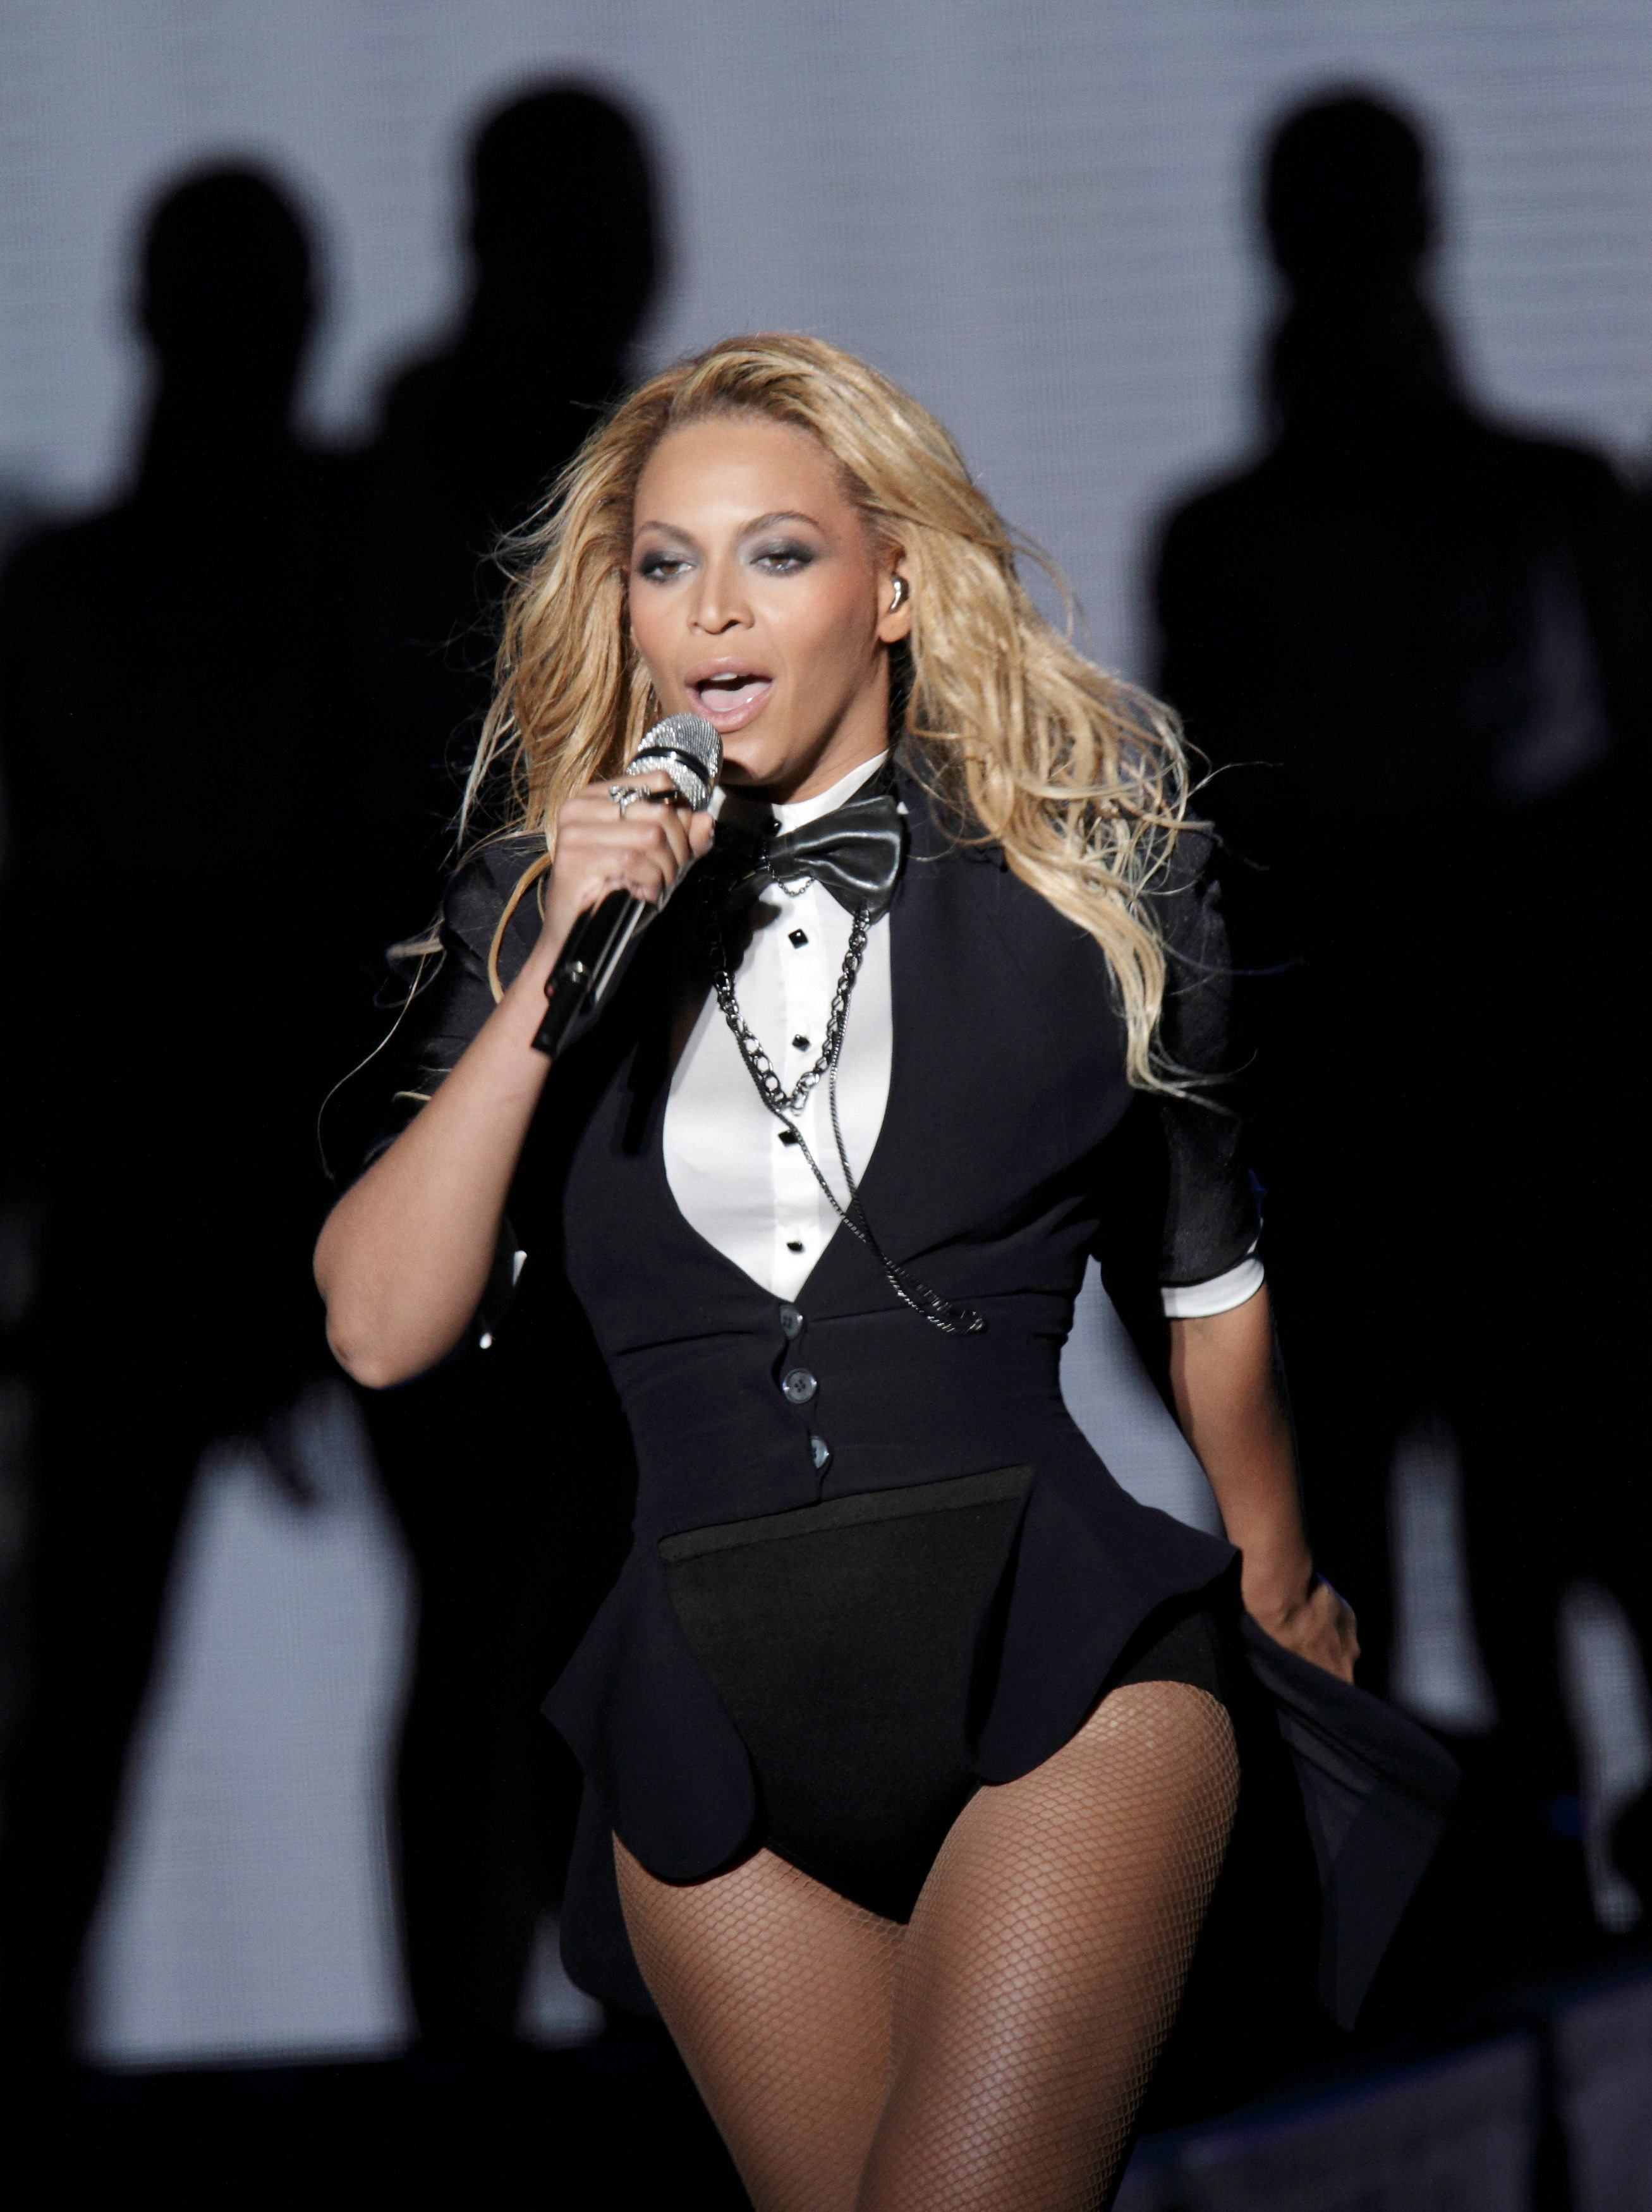 Pin by Jess on Queen Bey in 2019 | Beyonce, Beyonce run the